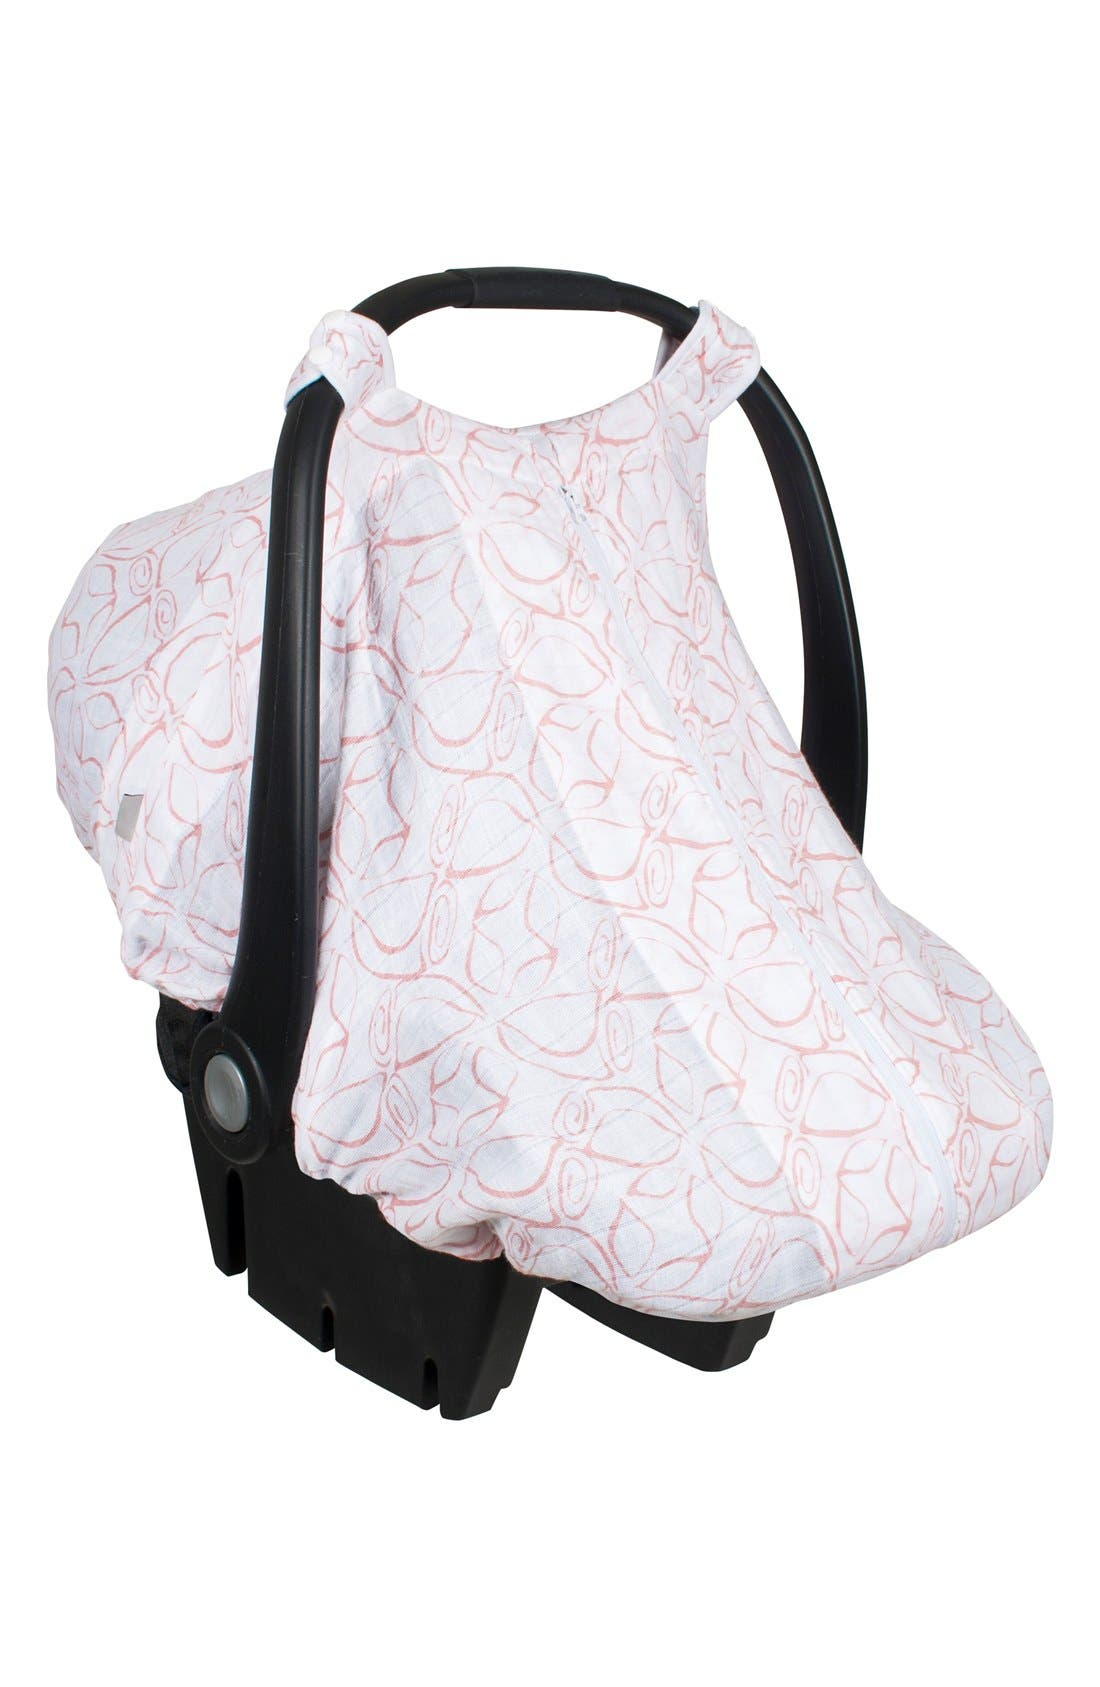 Muslin Car Seat Cover,                         Main,                         color, 101